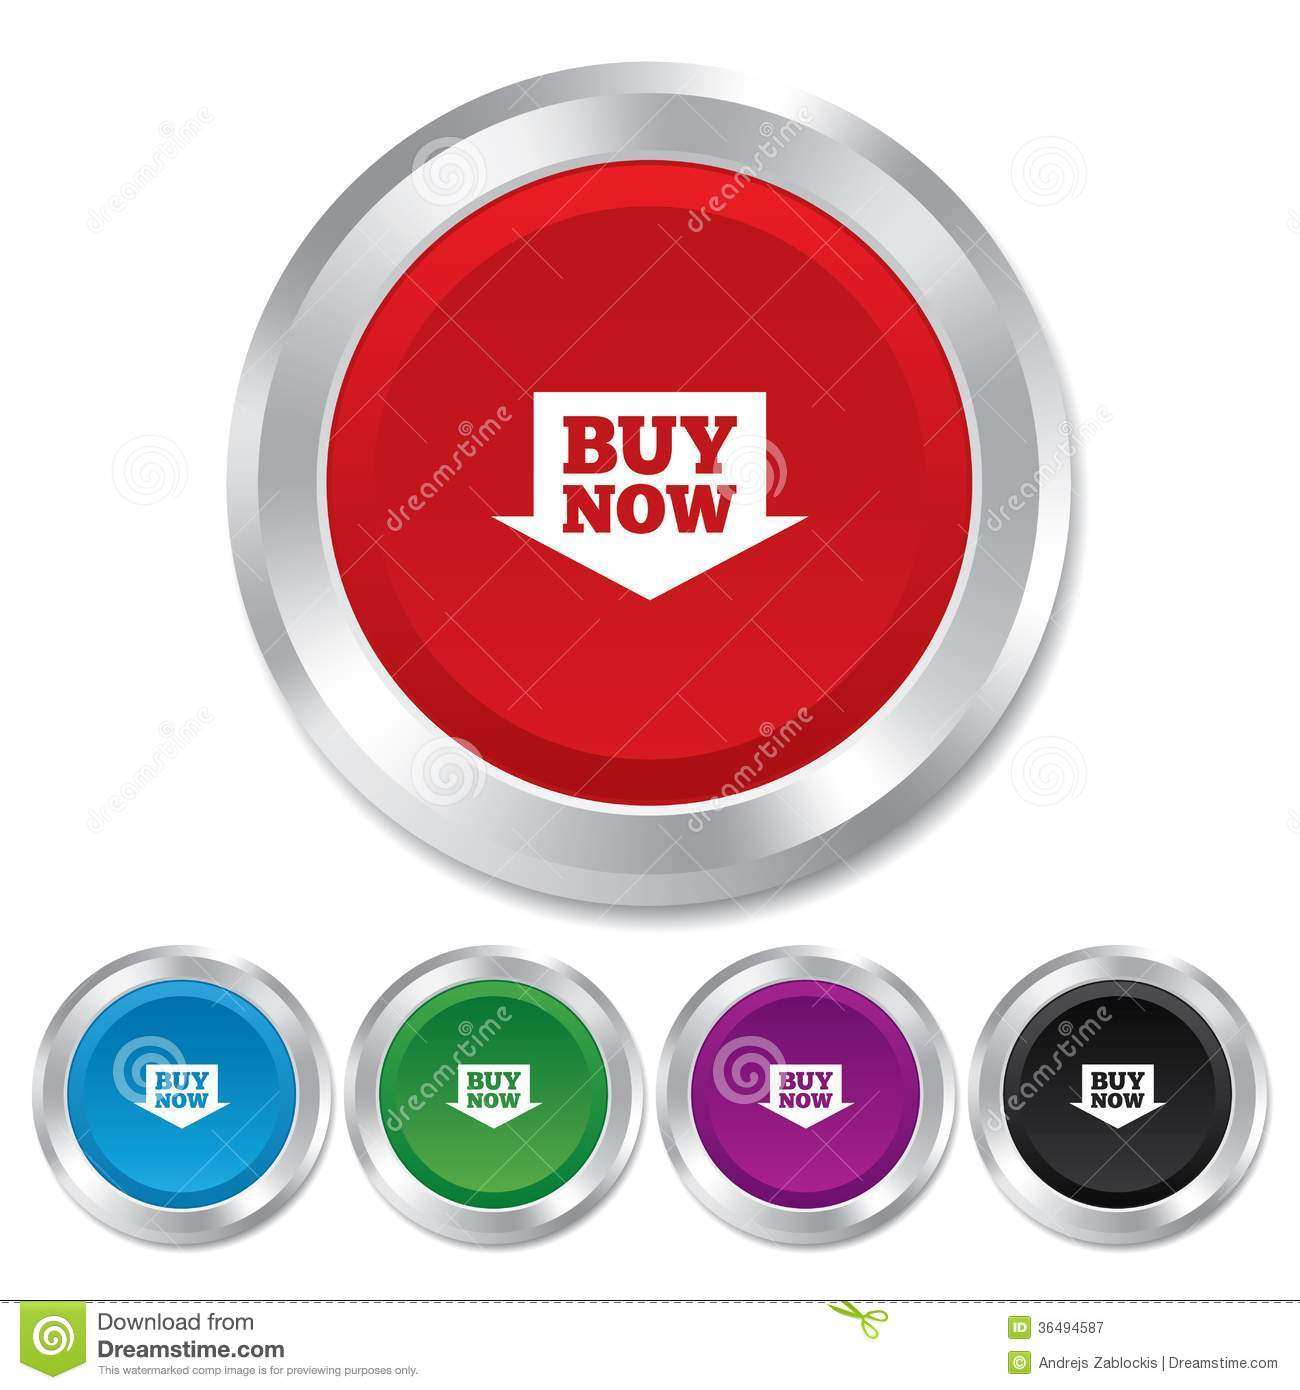 Buy It Now: Buy Now Sign Icon. Online Buying Arrow Button. Royalty